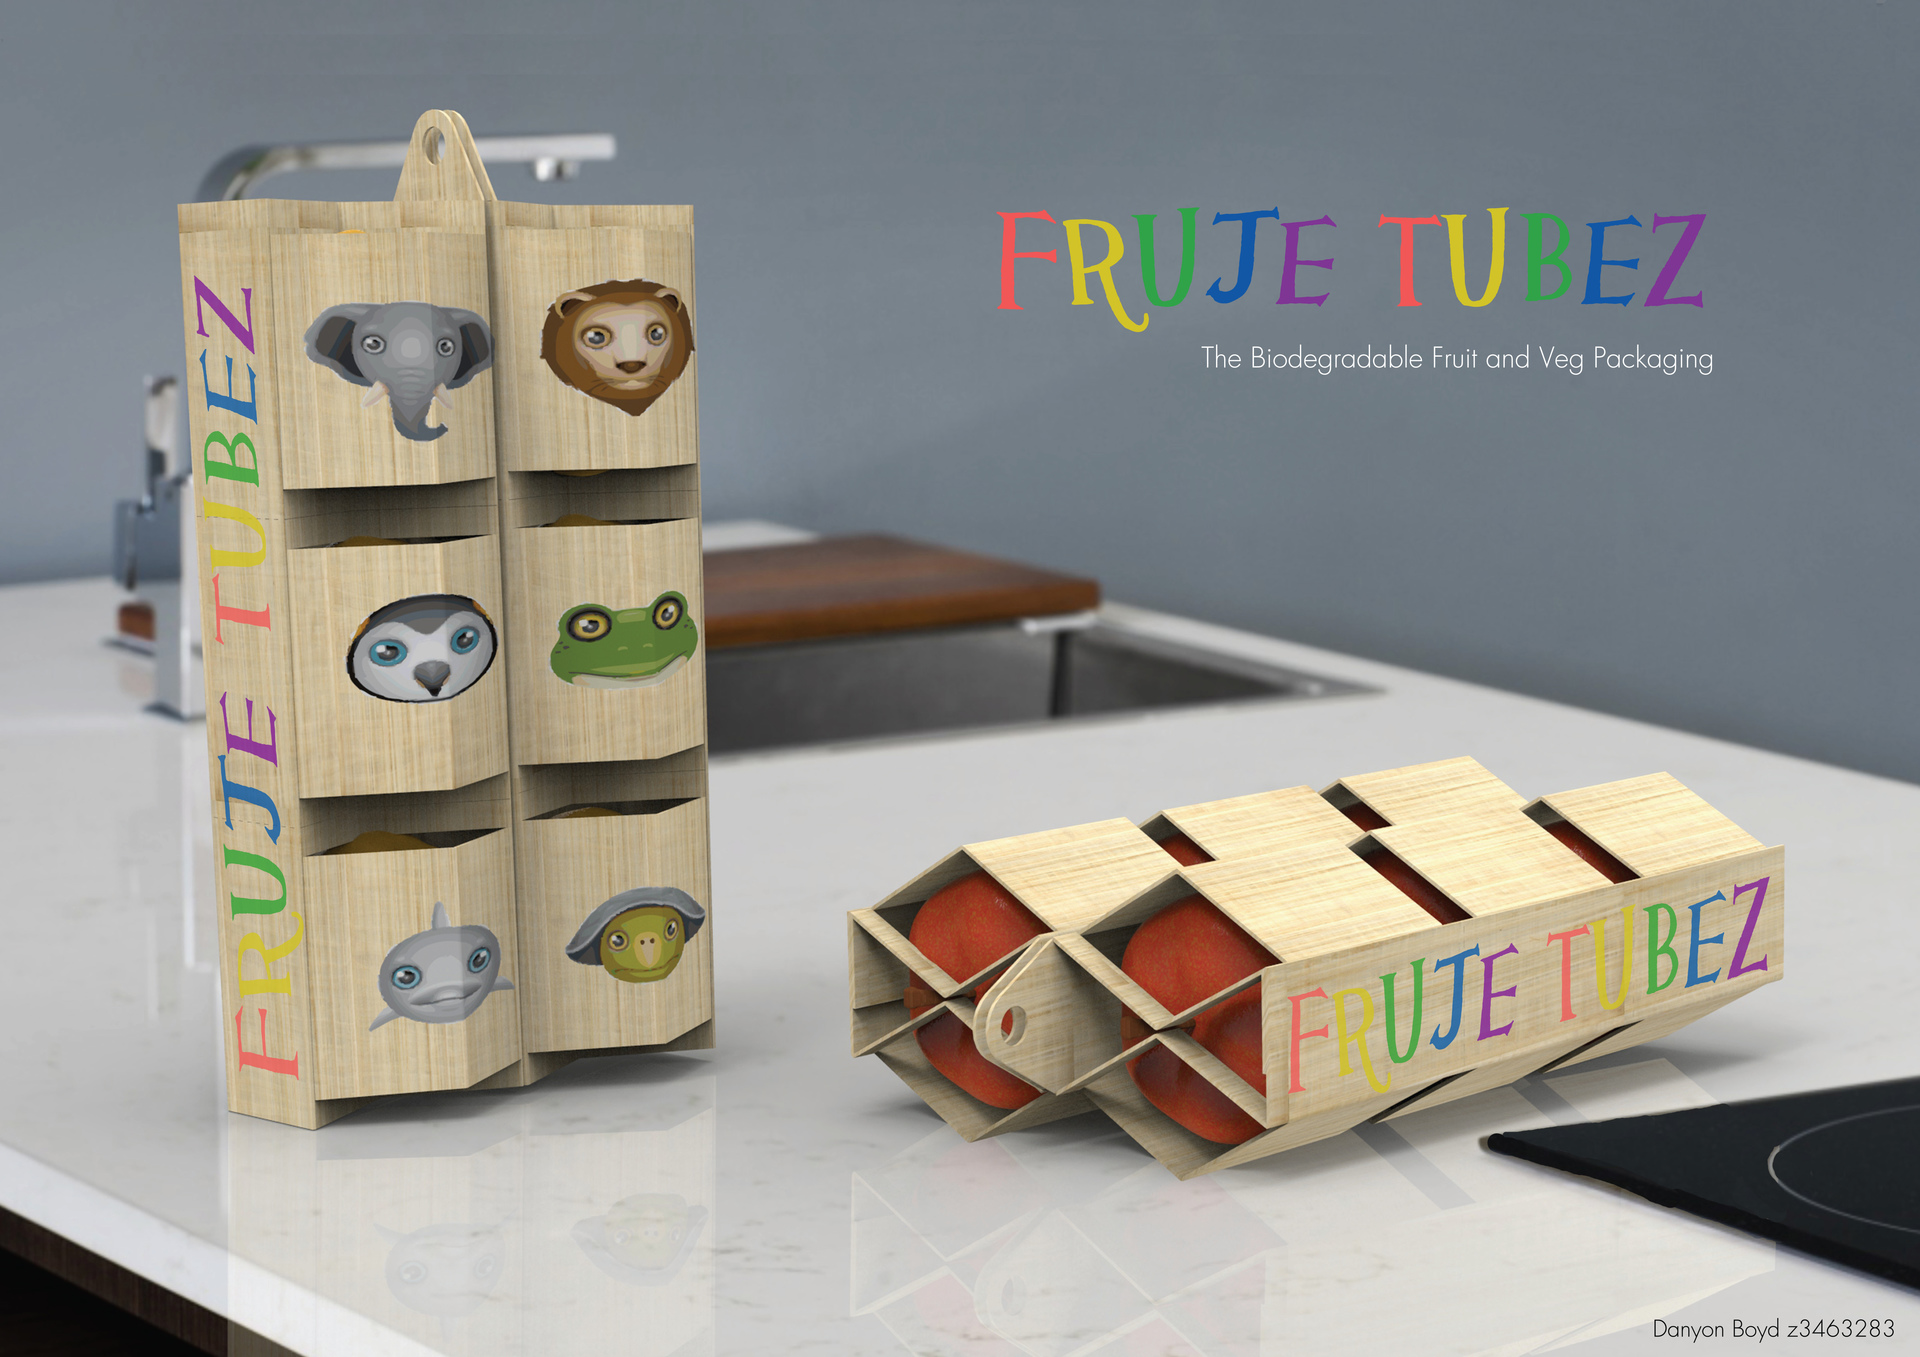 Fruje Tubez - Biomimicry Sustainable food packaging